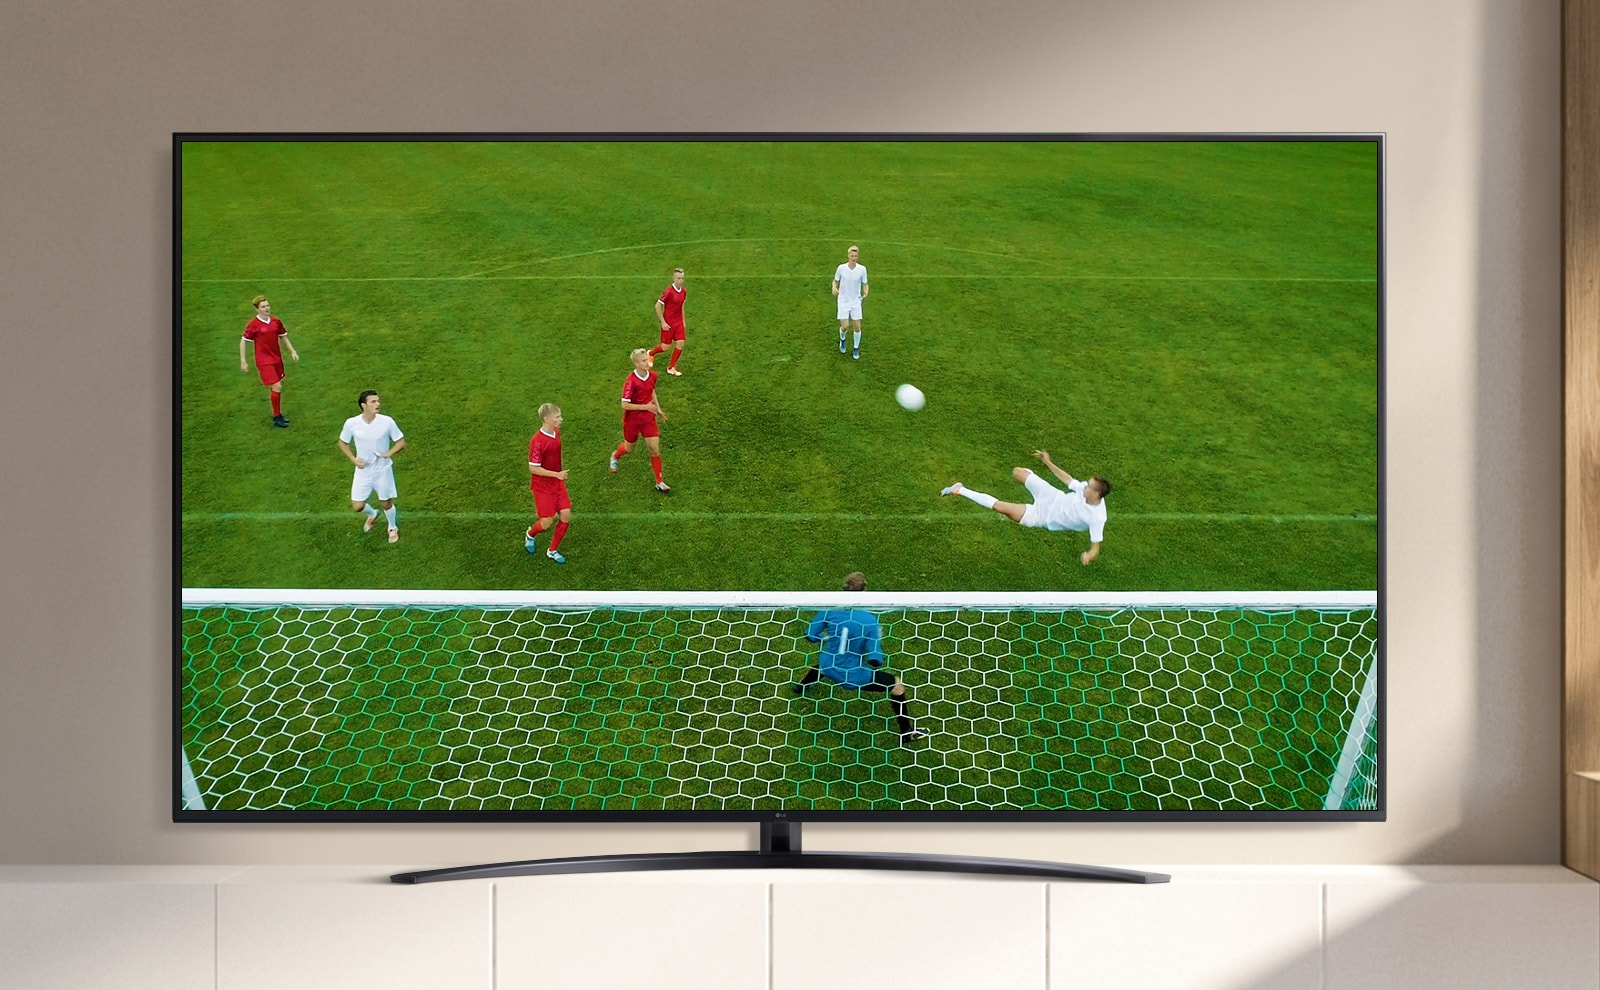 A video is shown on a TV screen in which a football player scores a goal during a football match. (play video)